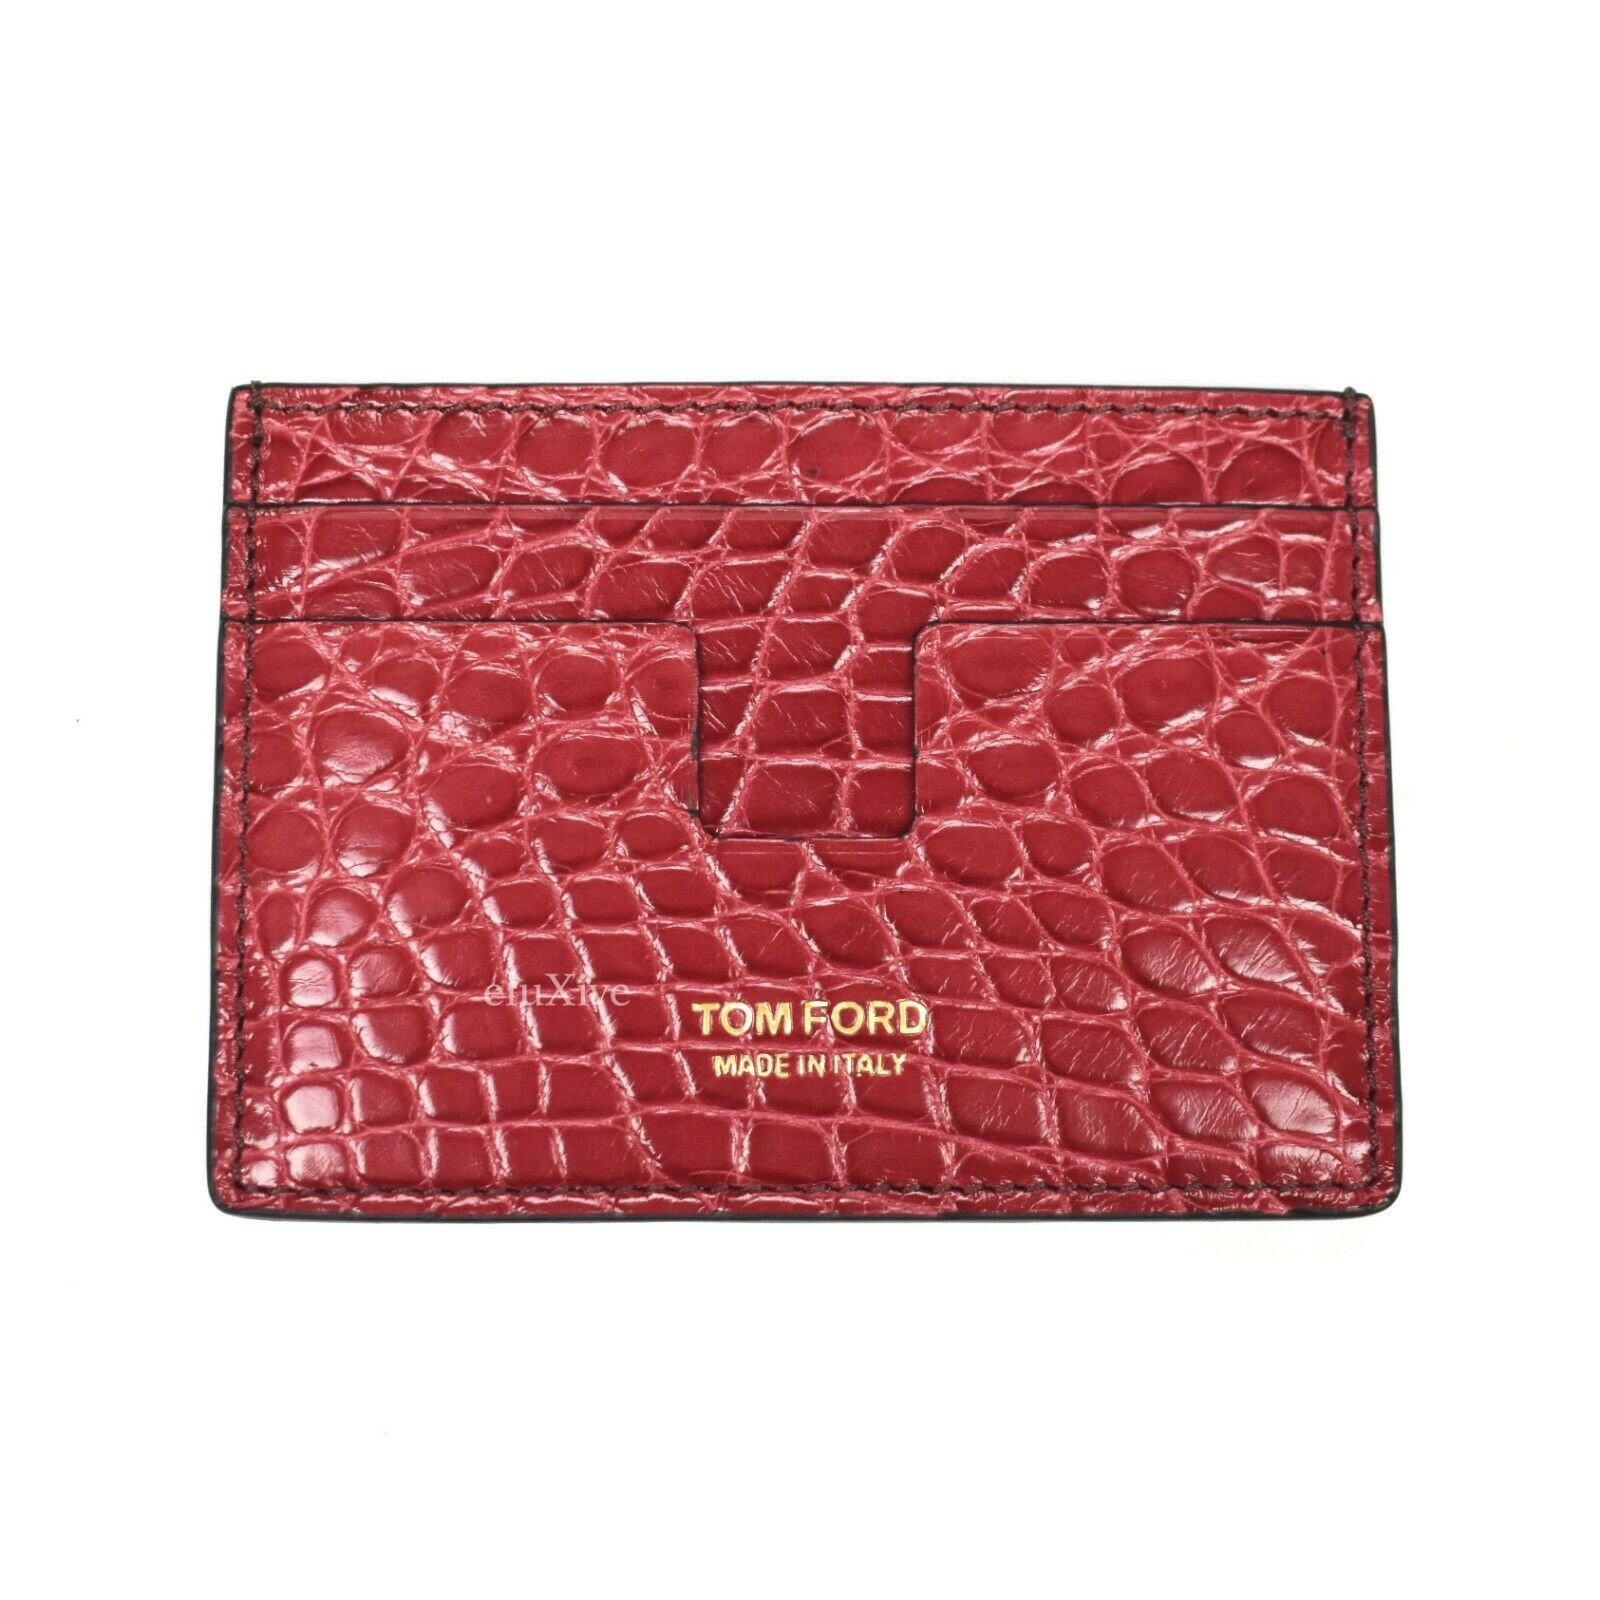 NWT k+ TOM FORD Exotic Alligator Leather Card Holder Case Wallet Red AUTHENTIC